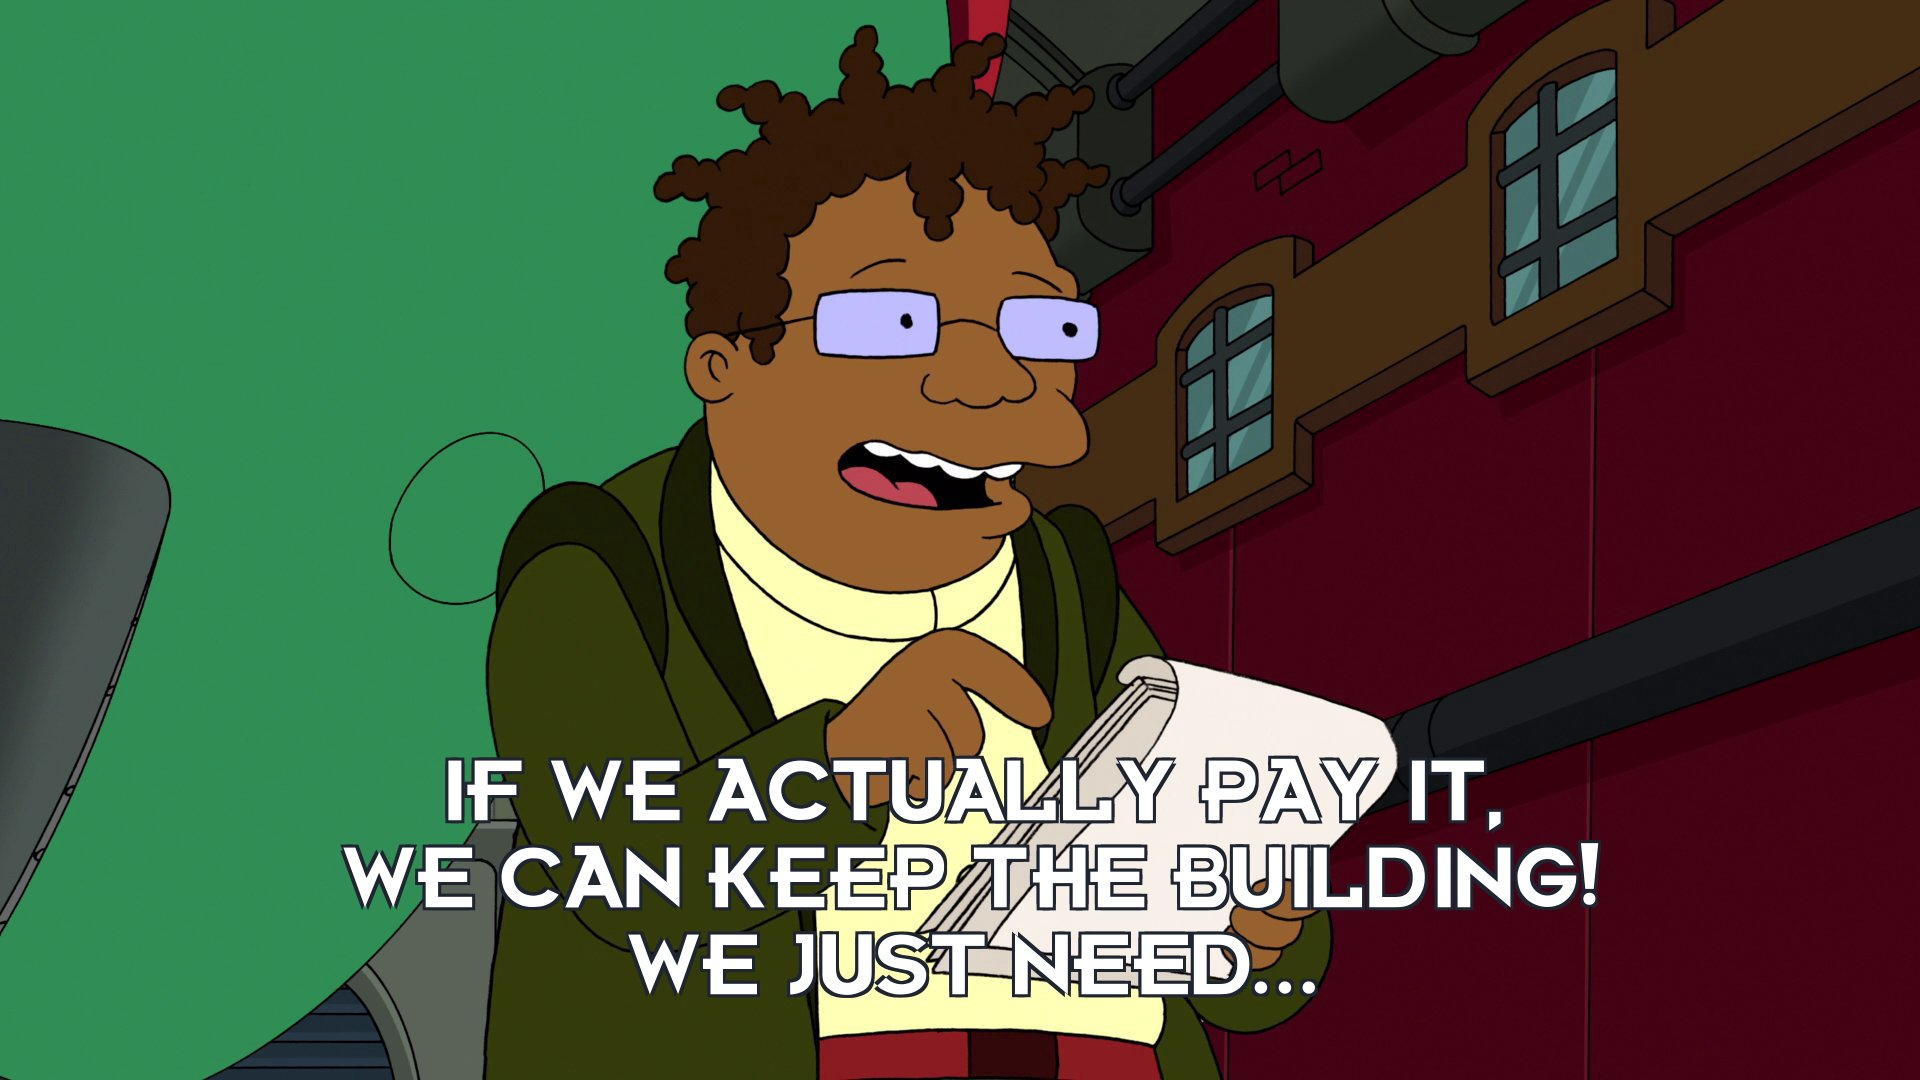 Hermes Conrad: If we actually pay it, we can keep the building! We just need...